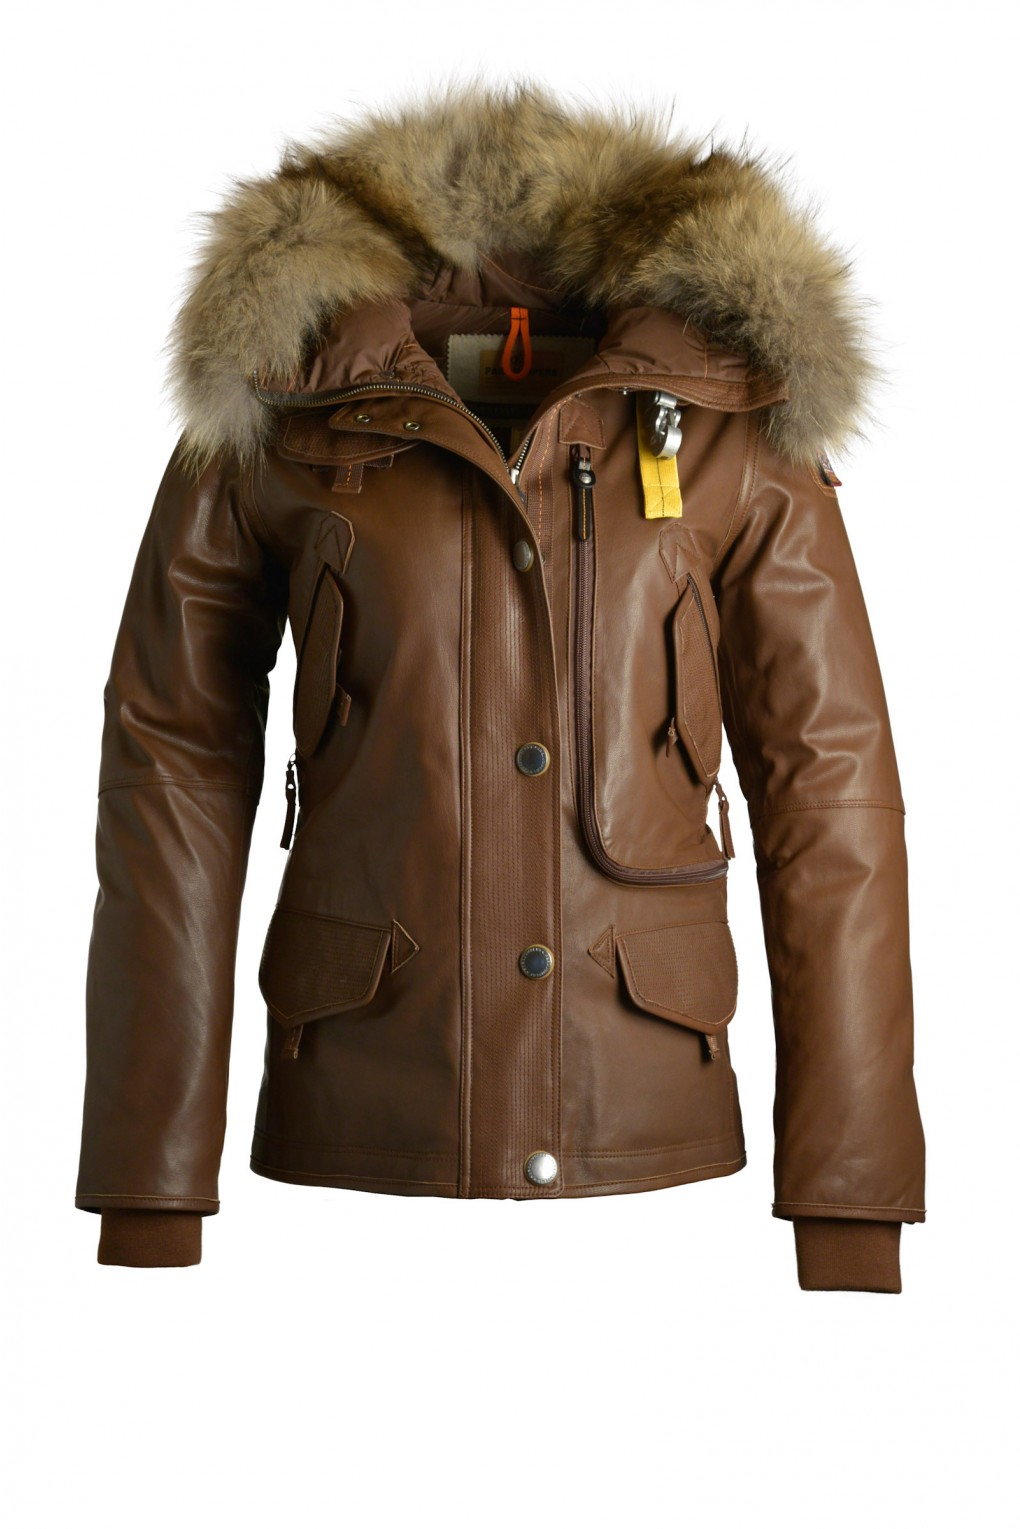 parajumpers DORIS LEATHER woman outerwear Brown